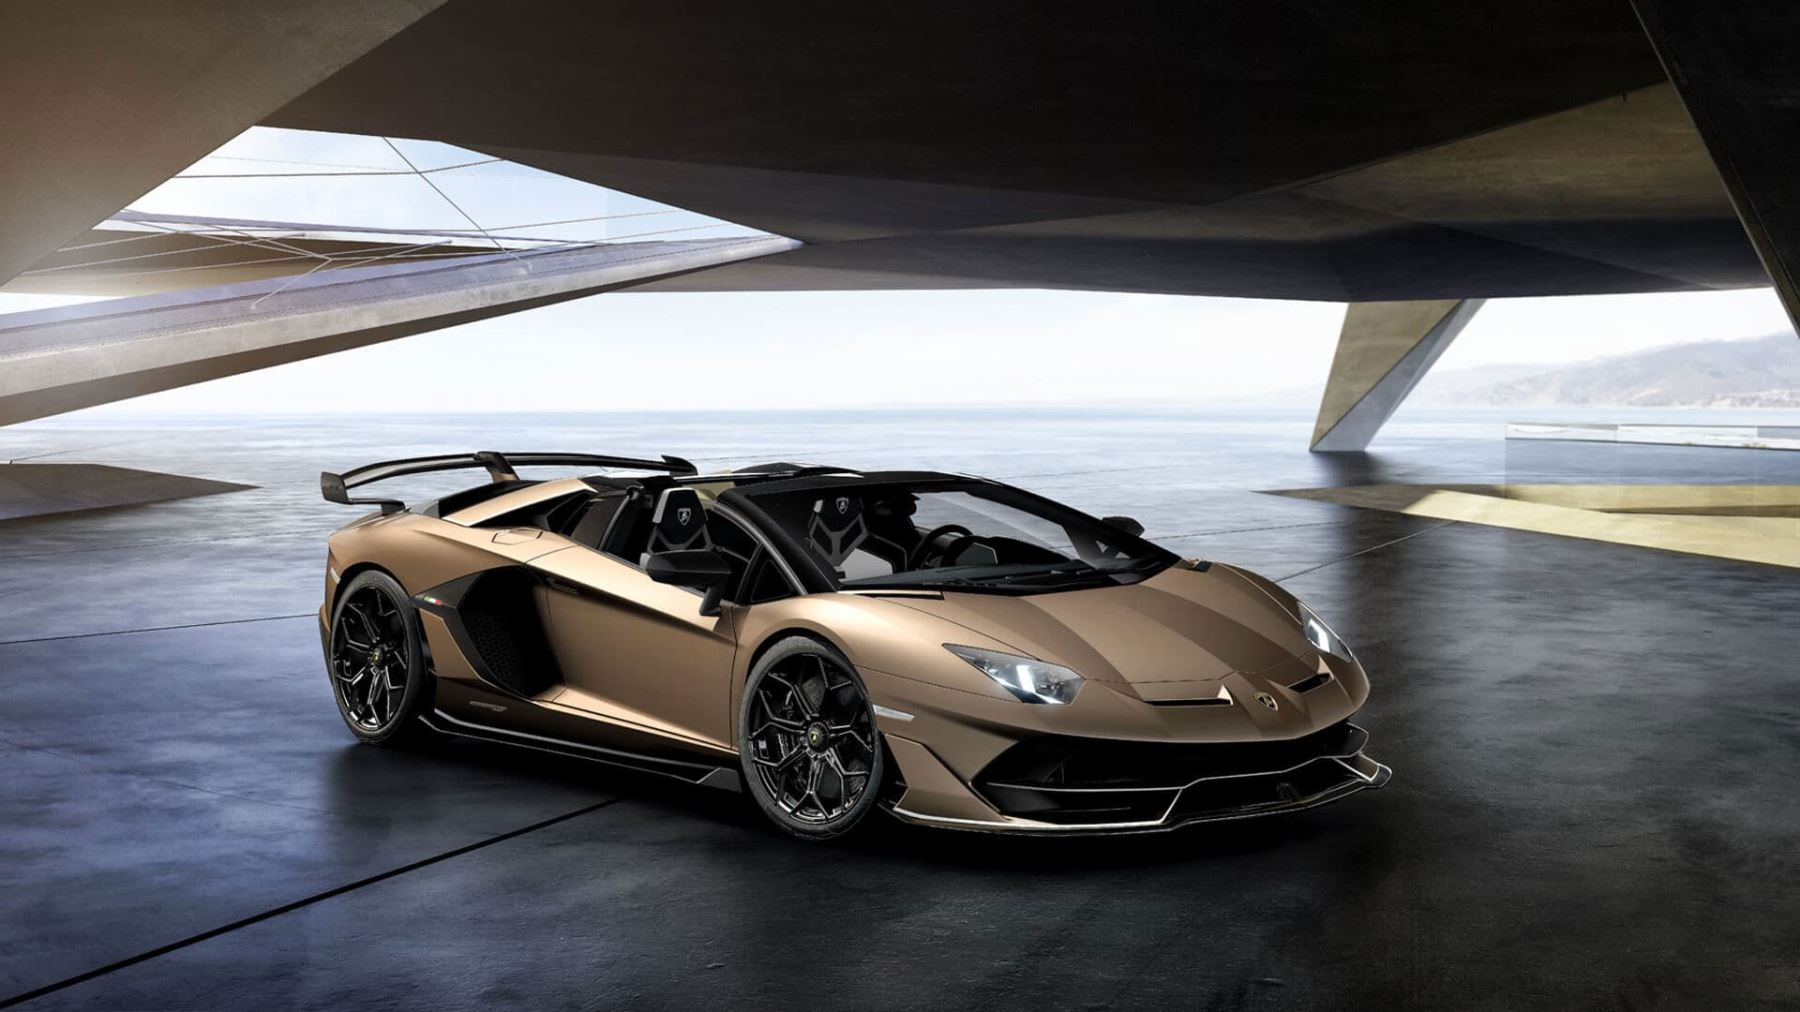 Lamborghini Aventador SVJ Roadster - Real emotions shape the future image 3